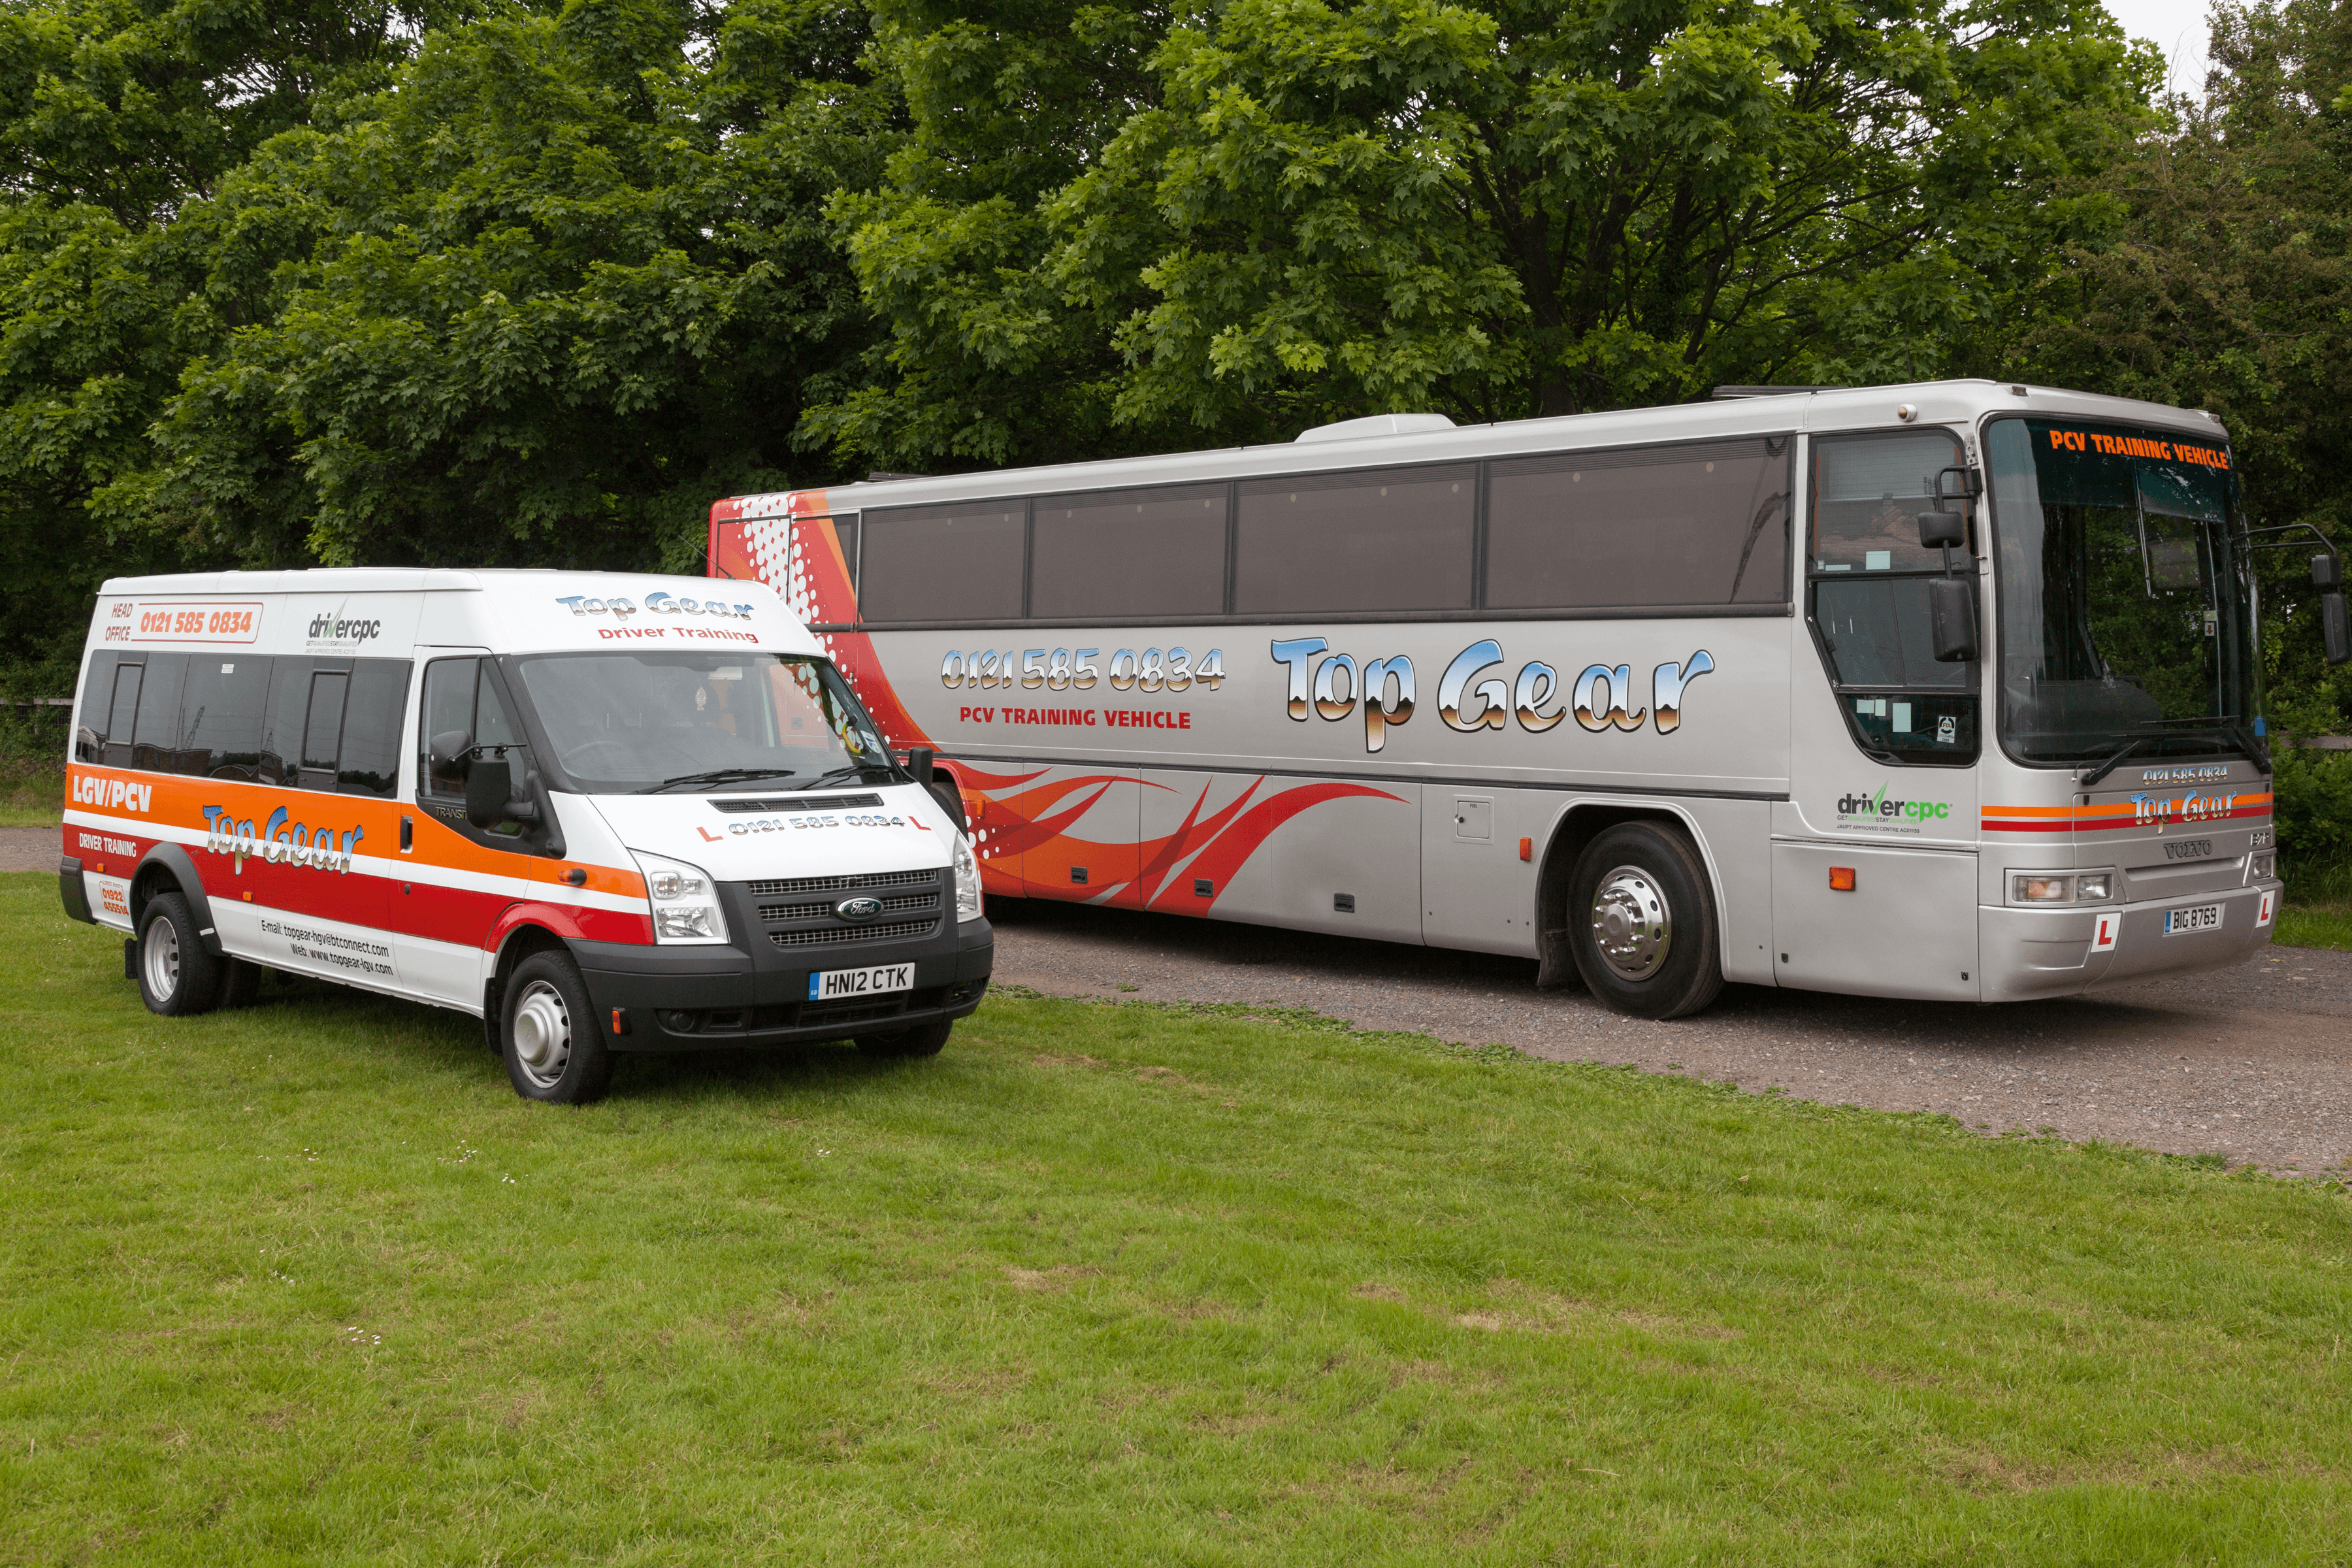 Top Gear coach and Ford Transit